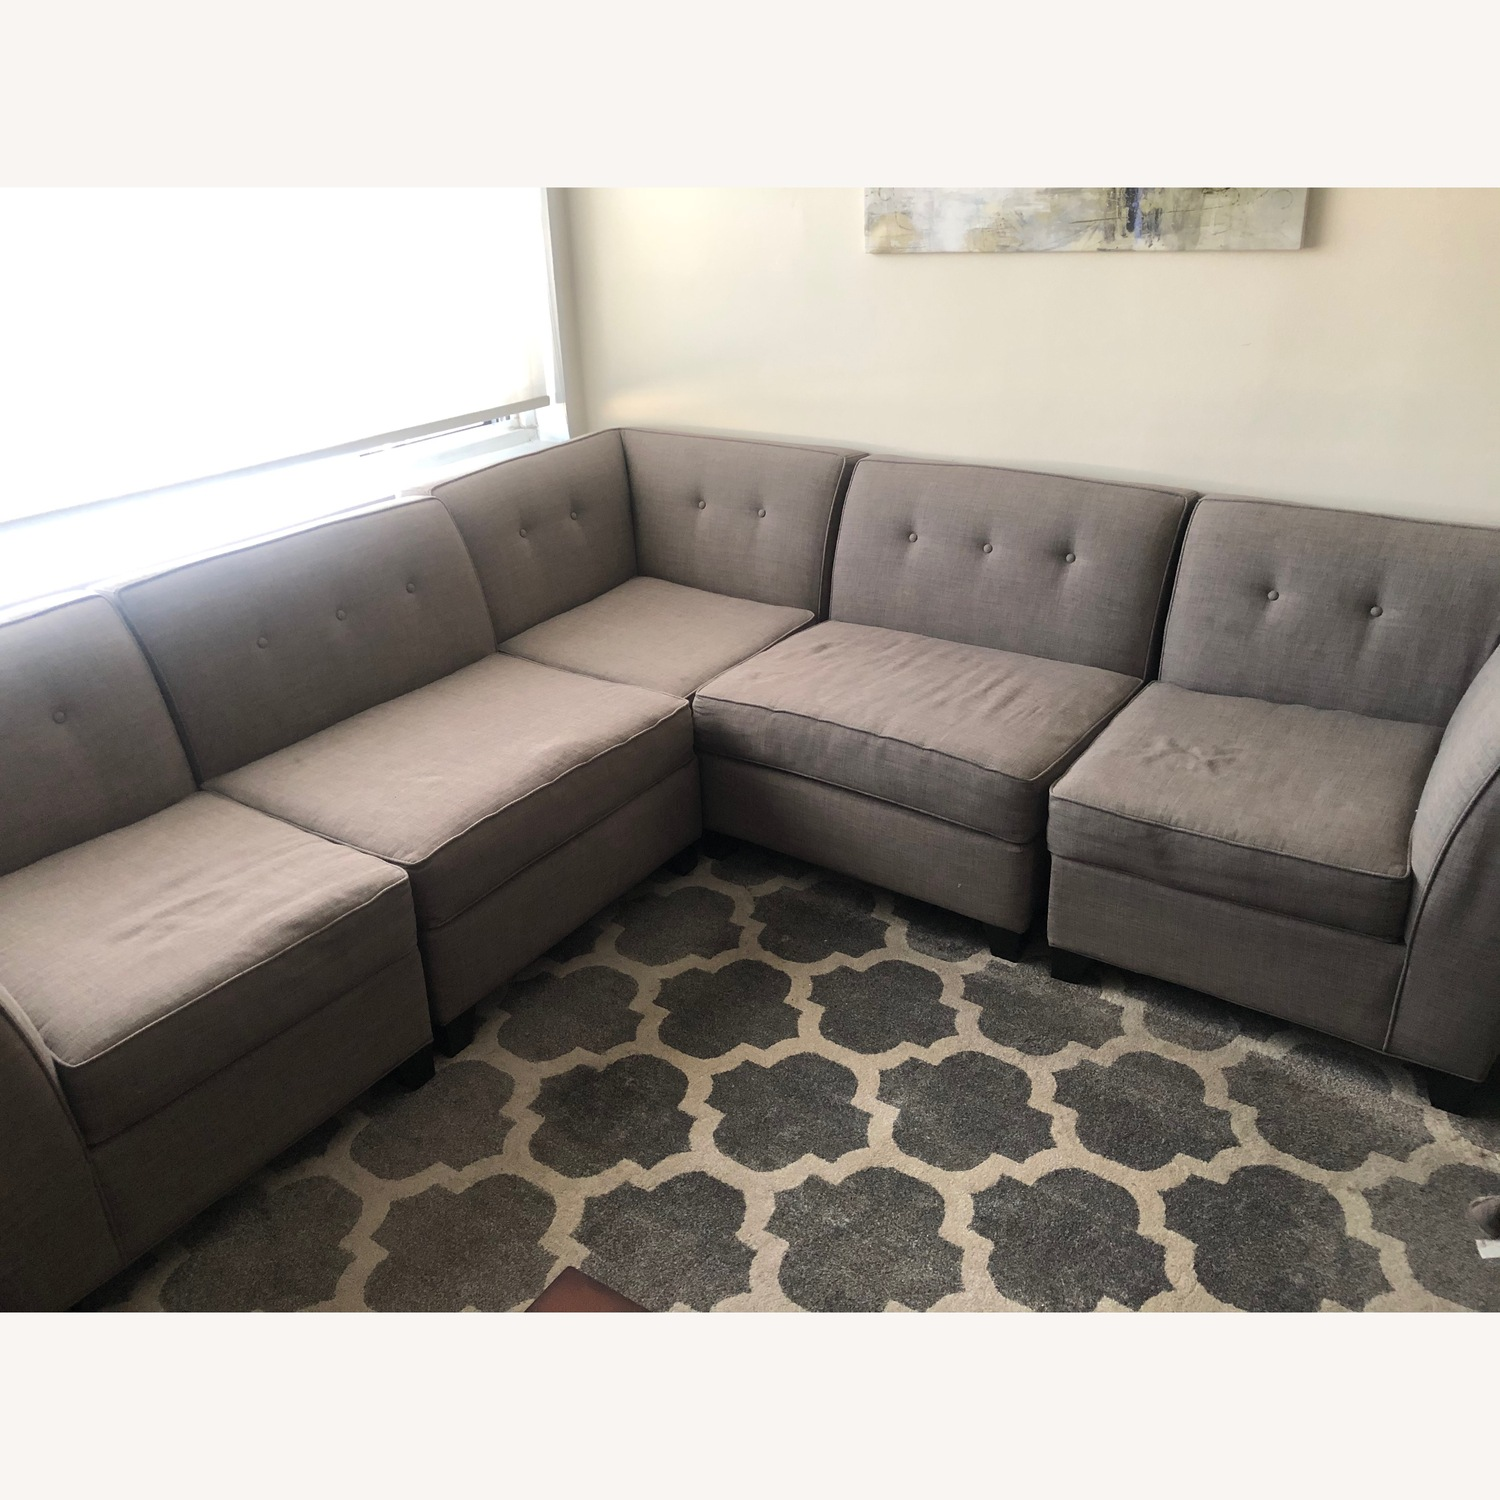 Macys Roxanne Couch - image-2